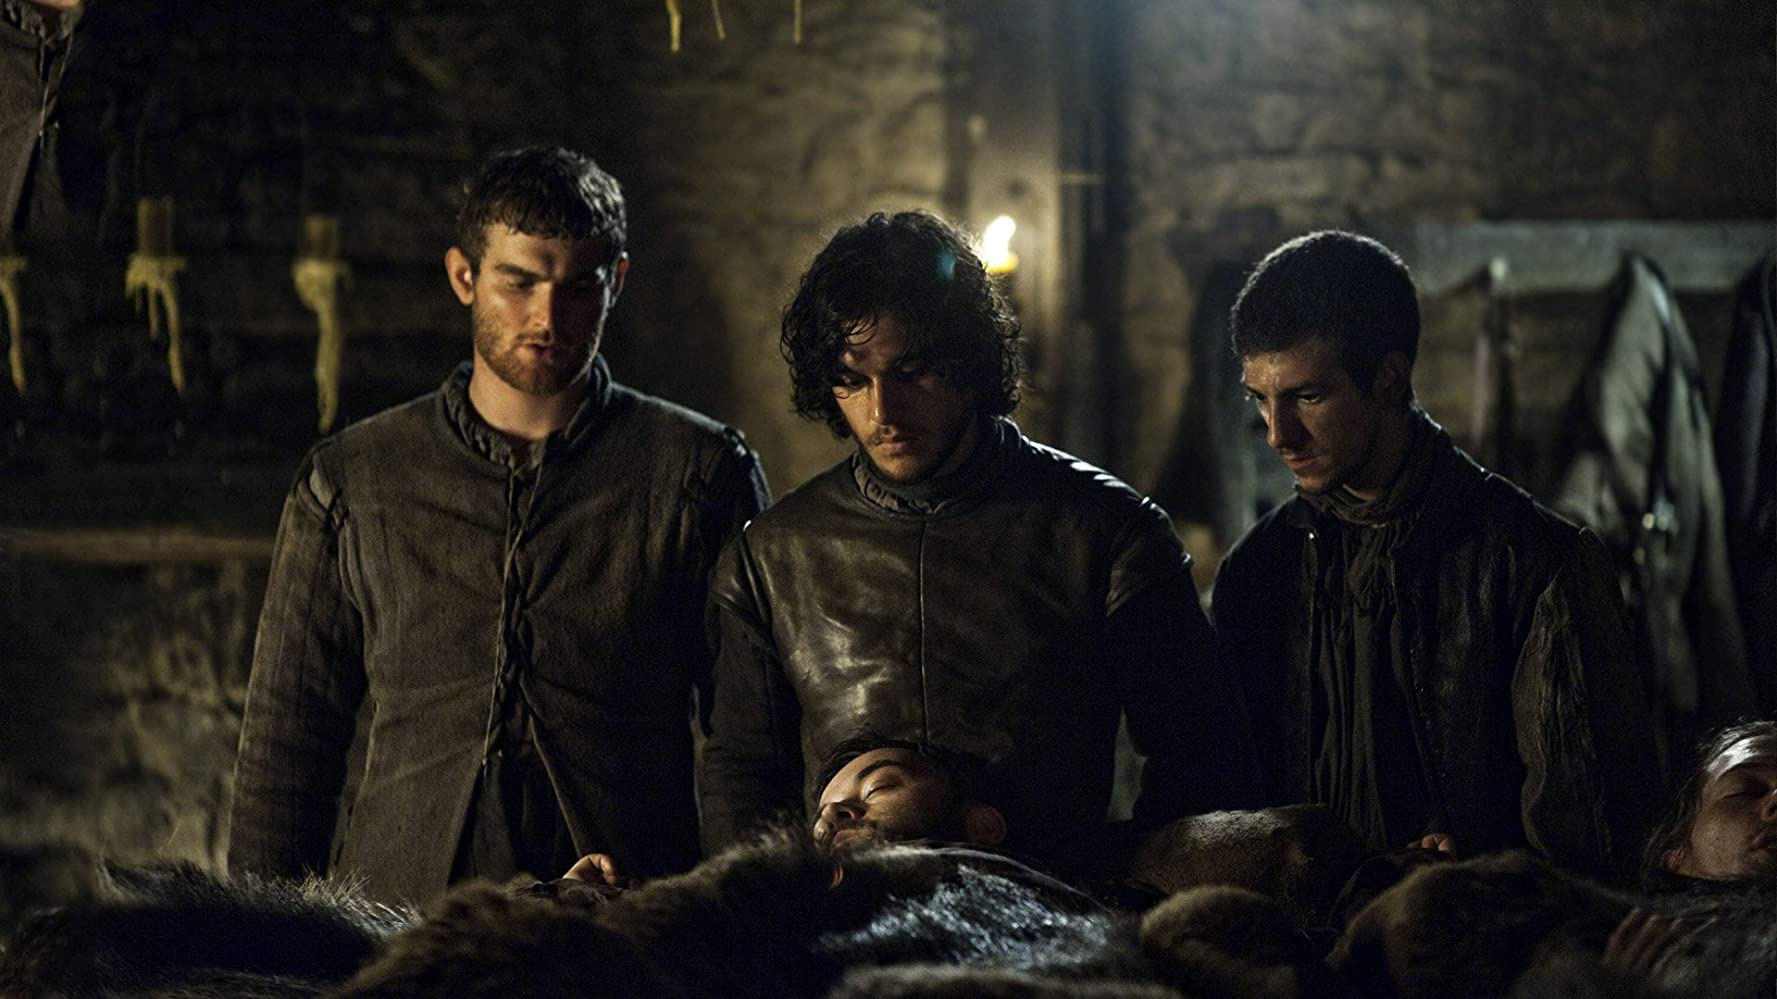 Josef Altin, Kit Harington, and Mark Stanley in Game of Thrones (2011)